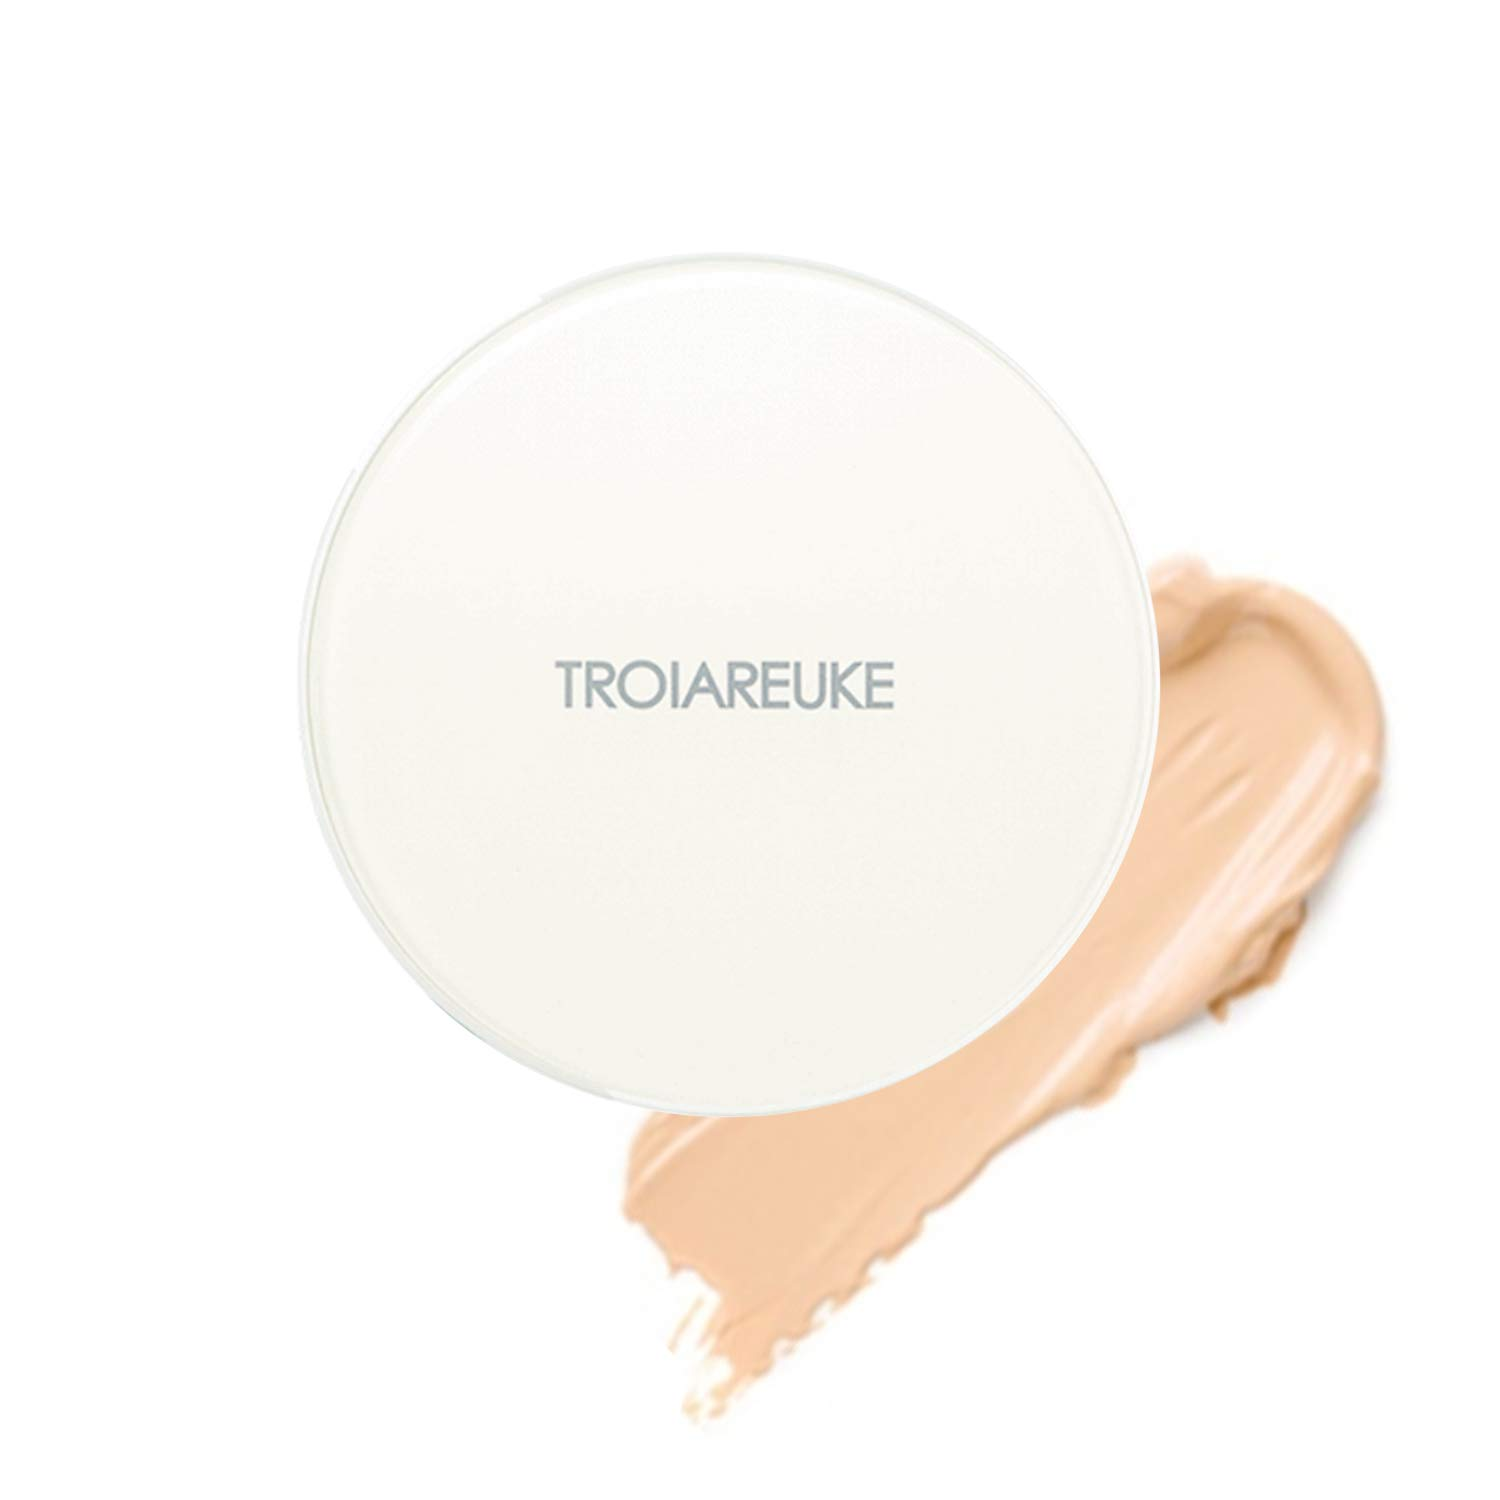 TROIAREUKE A+ Cushion Foundation, 21 Light Beige - SPF50+ PA++++ Healing Skincare Cushion Oily Acne Sensitive Skin